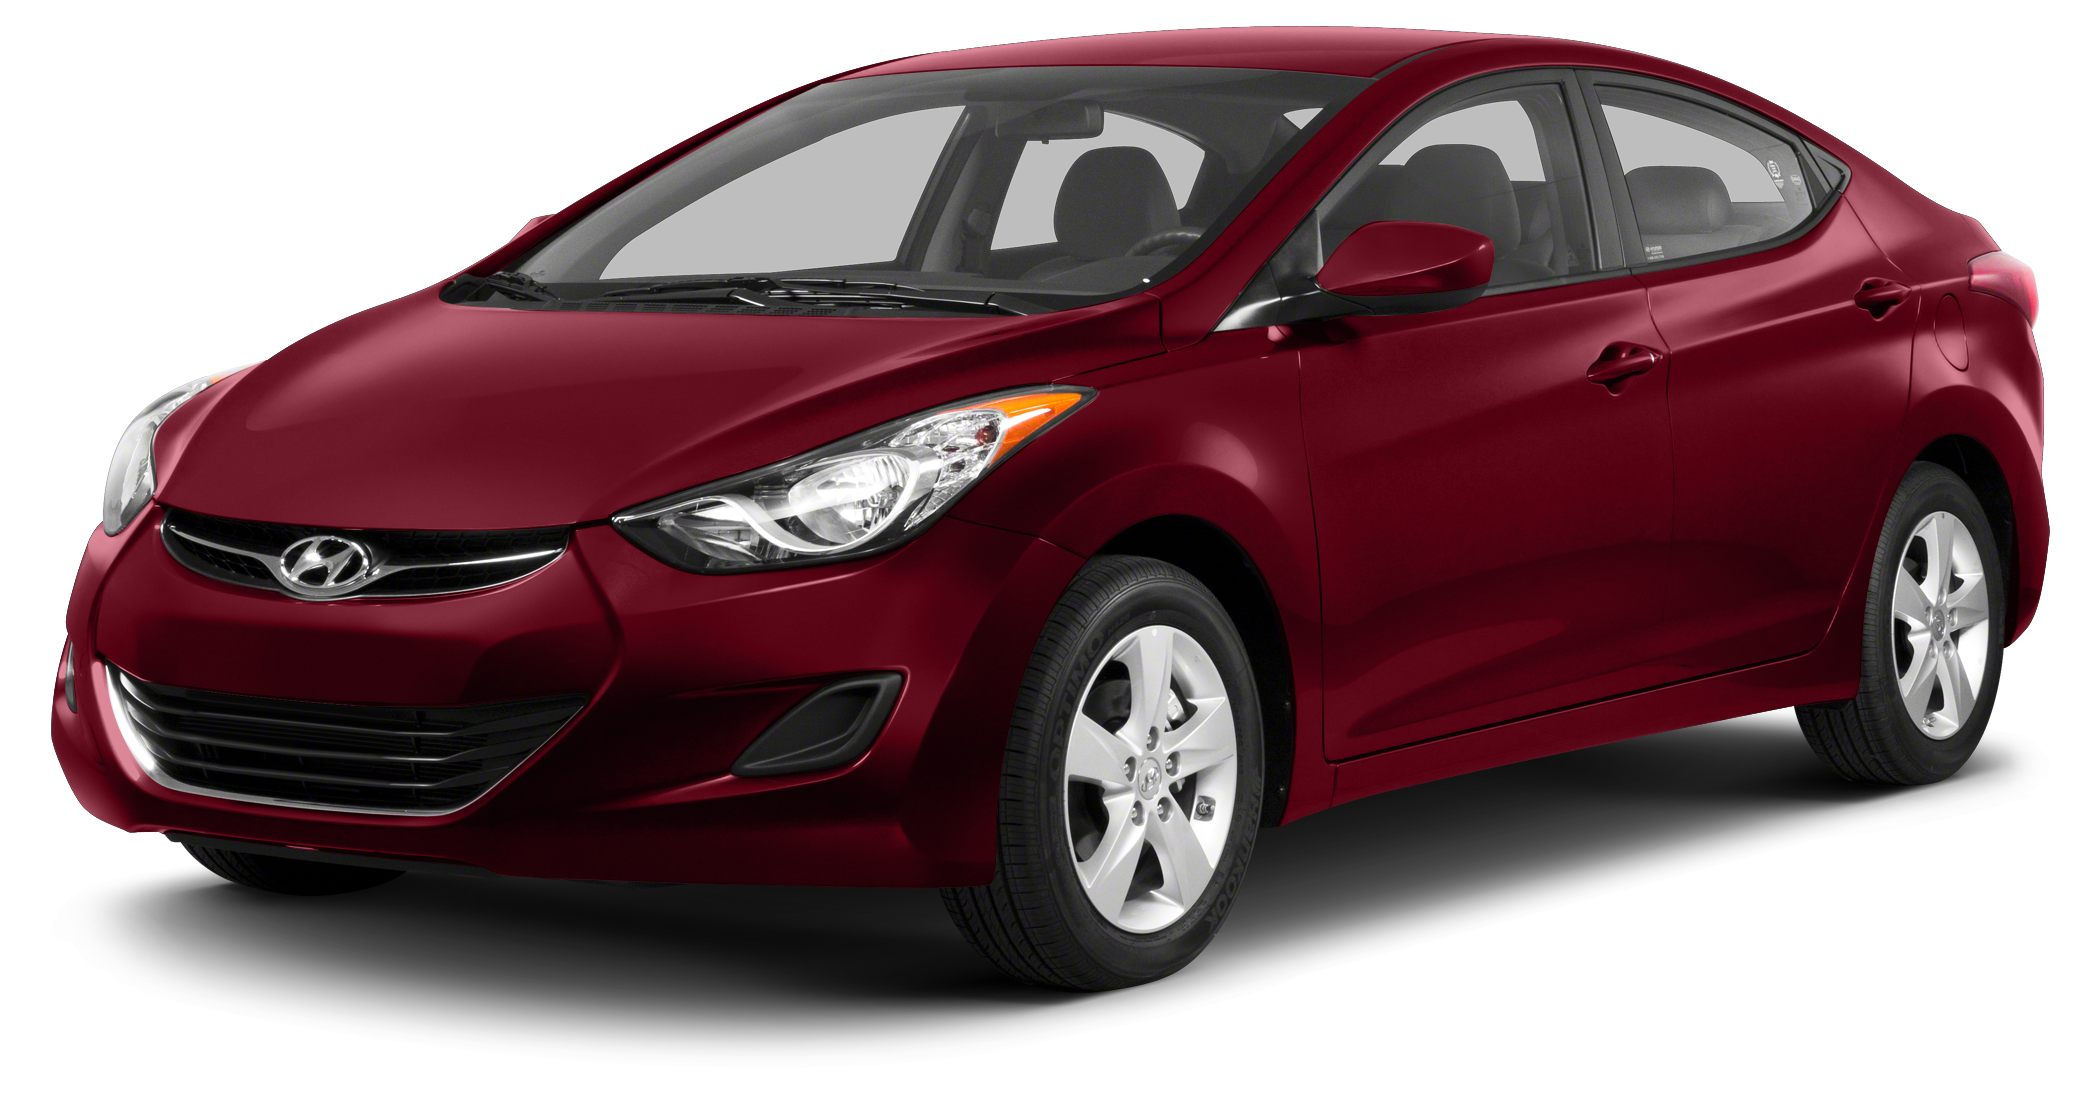 2013 Hyundai Elantra GLS Lifetime Engine Warranty at NO CHARGE on all pre-owned vehicles Courtesy